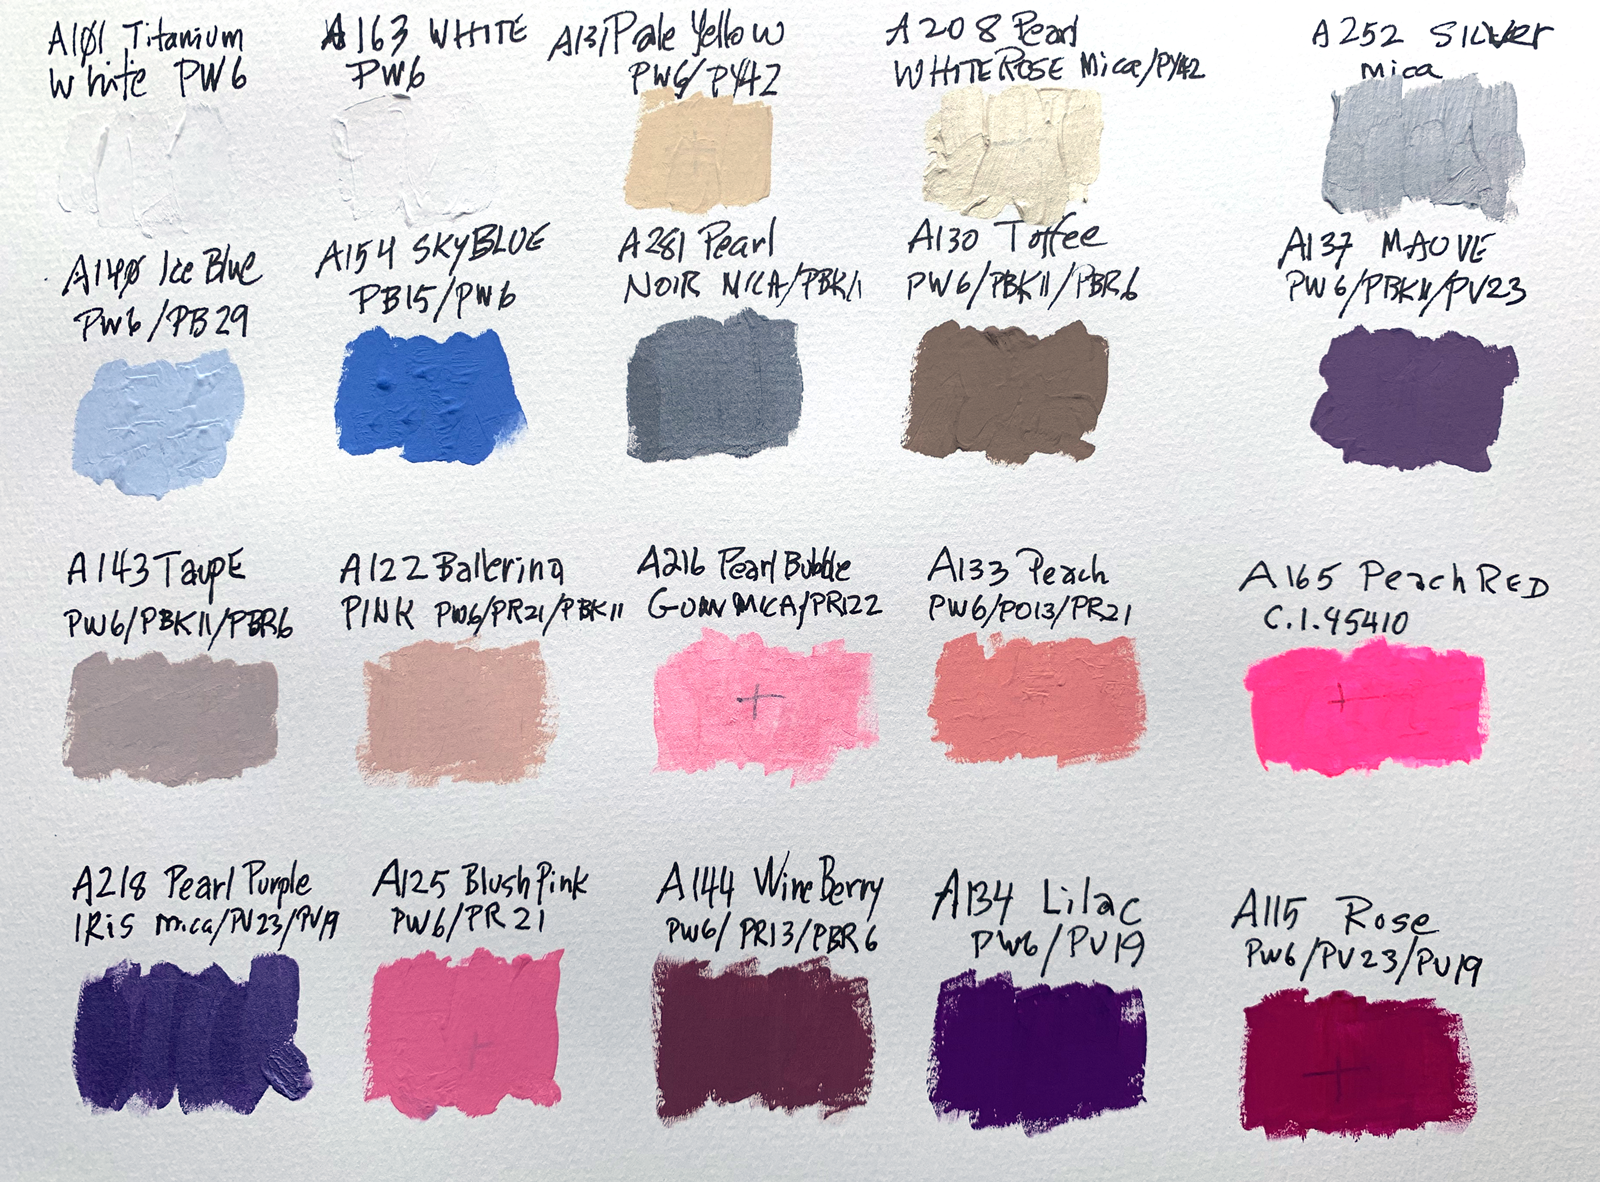 atreza_swatches_first_20_blog.png Arteza gouache,color swatches